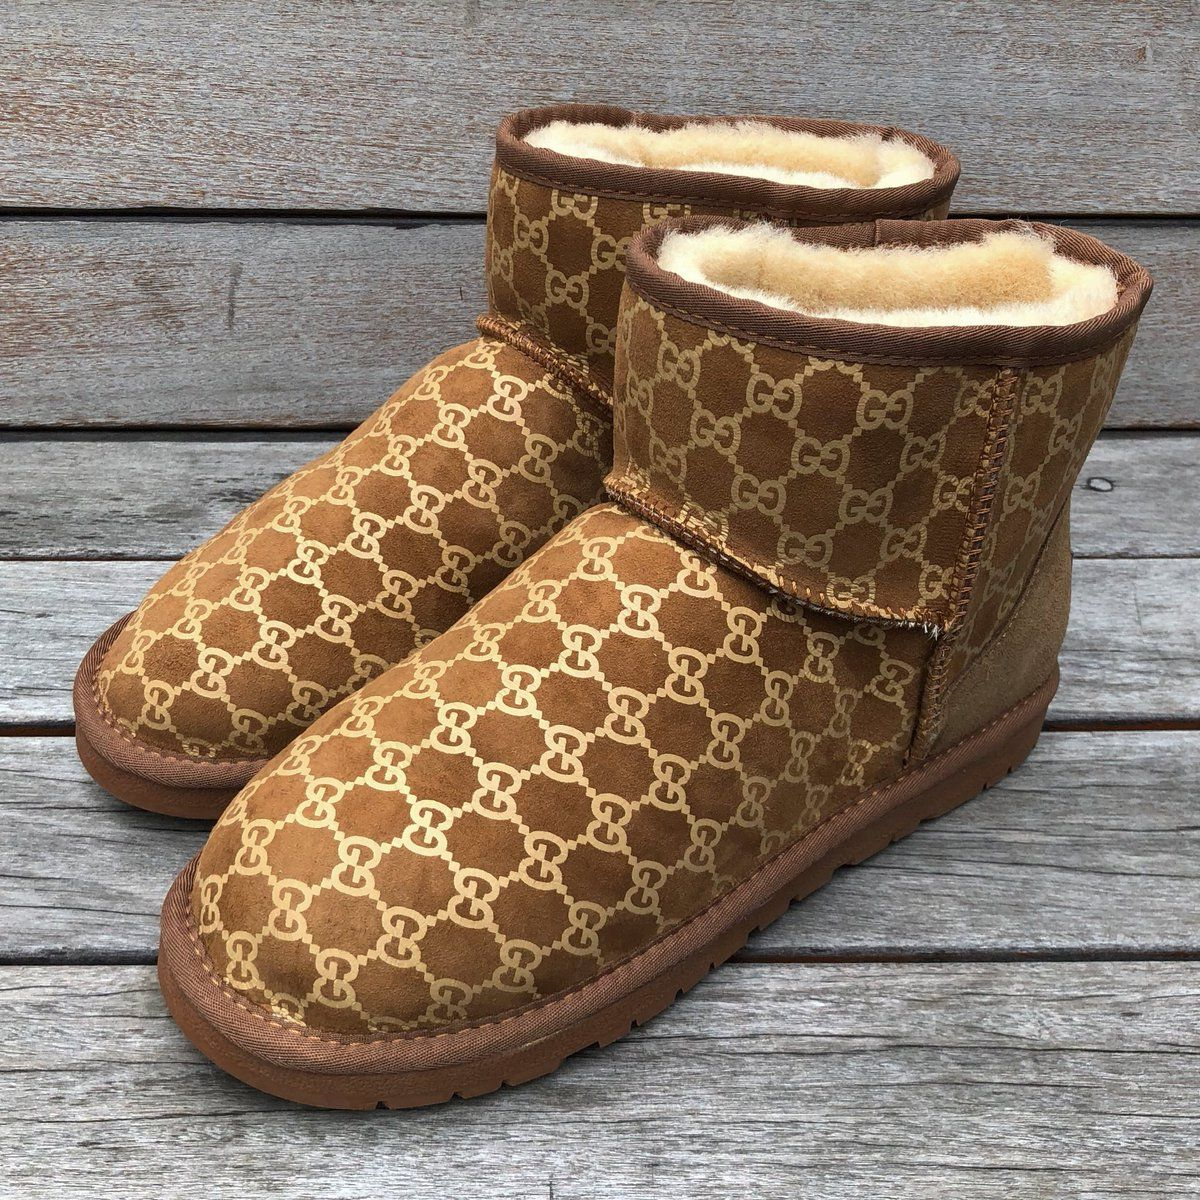 Gucci Ugg boots   Boots, Ugg boots